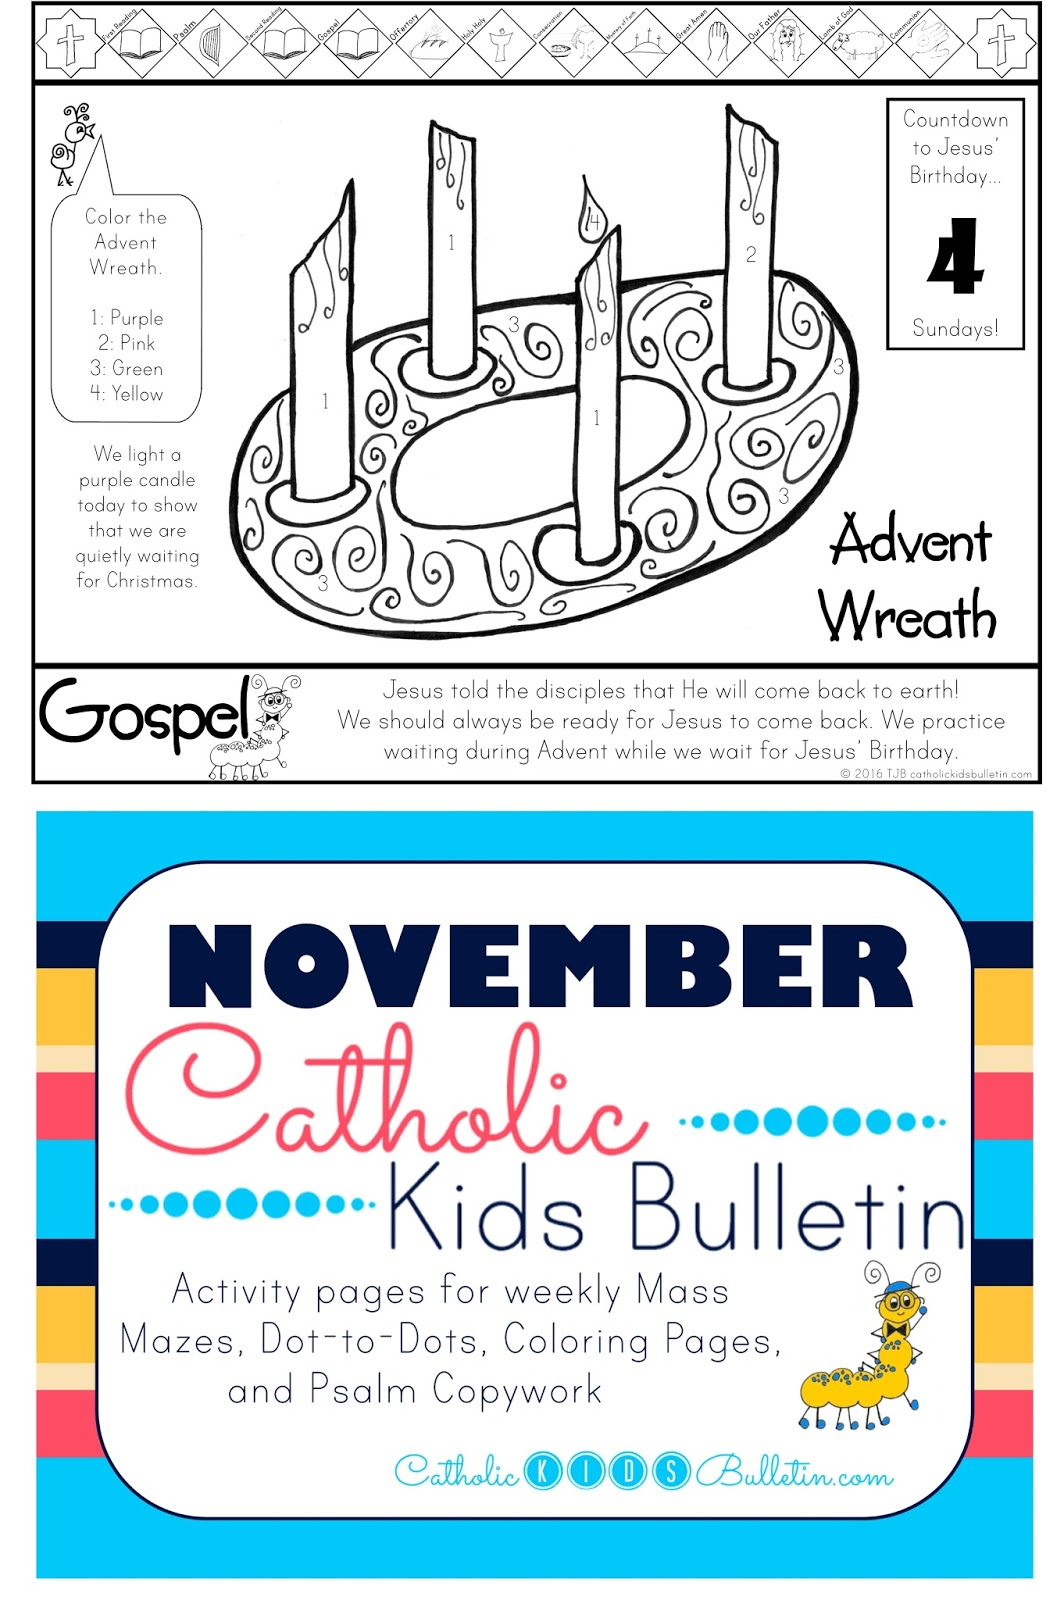 Catholic Kids Bulletin: Weekly Mass Prep for Kids! Matthew 24:37-44